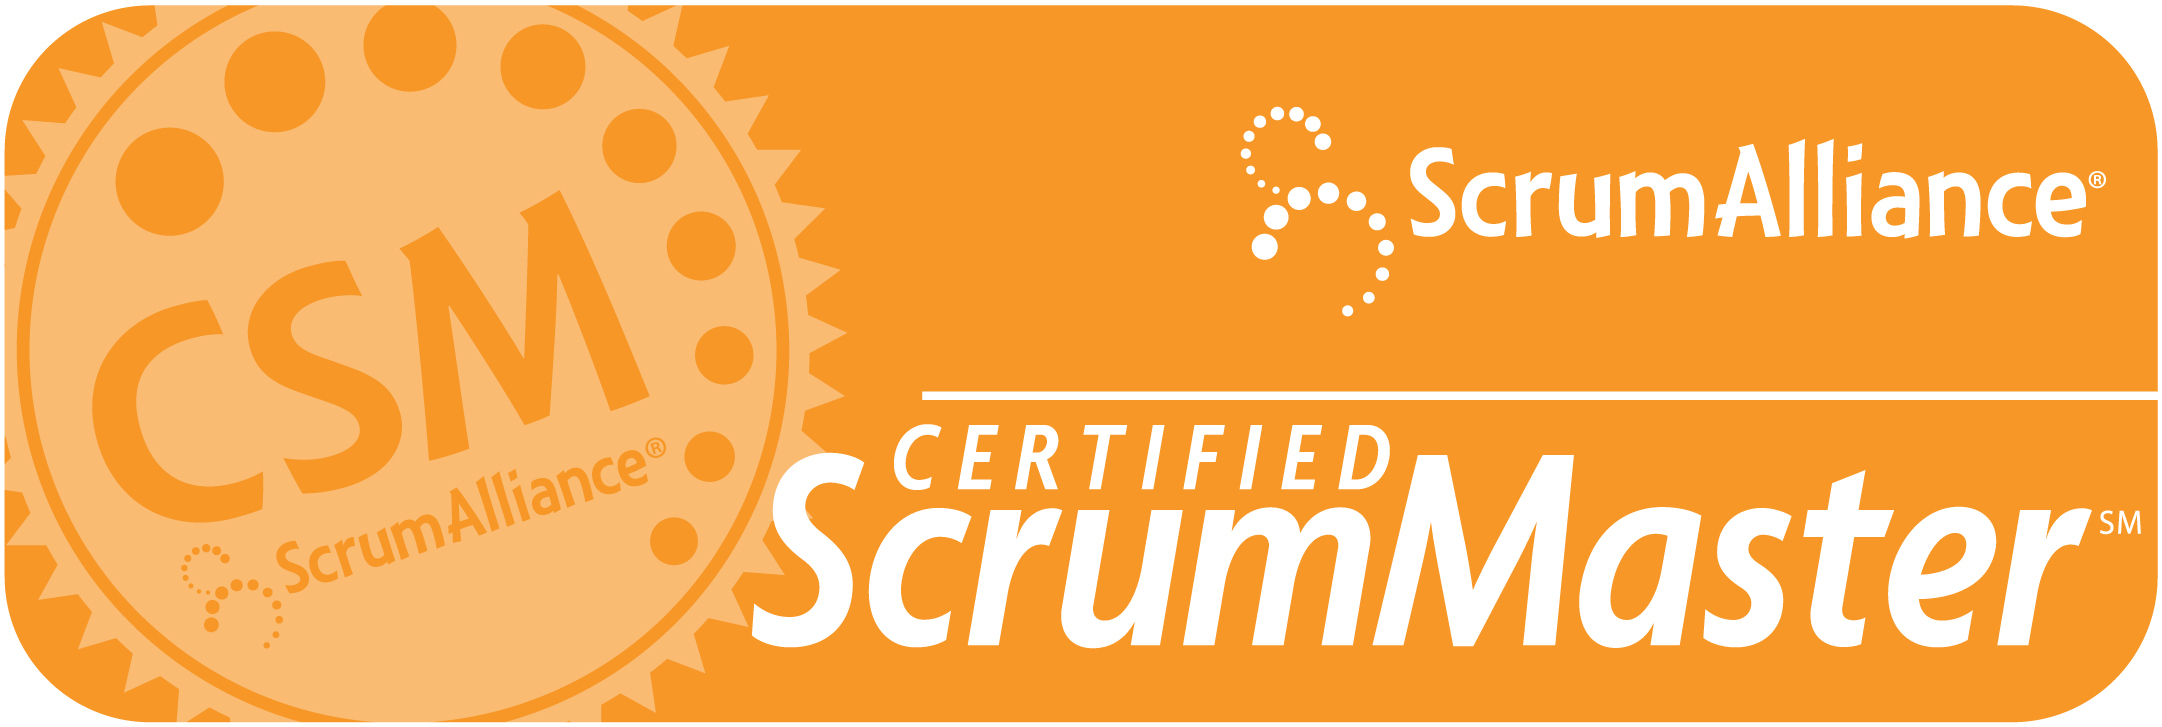 Класс Certified Scrum Master (Scrum Alliance) от ScrumGUIDES